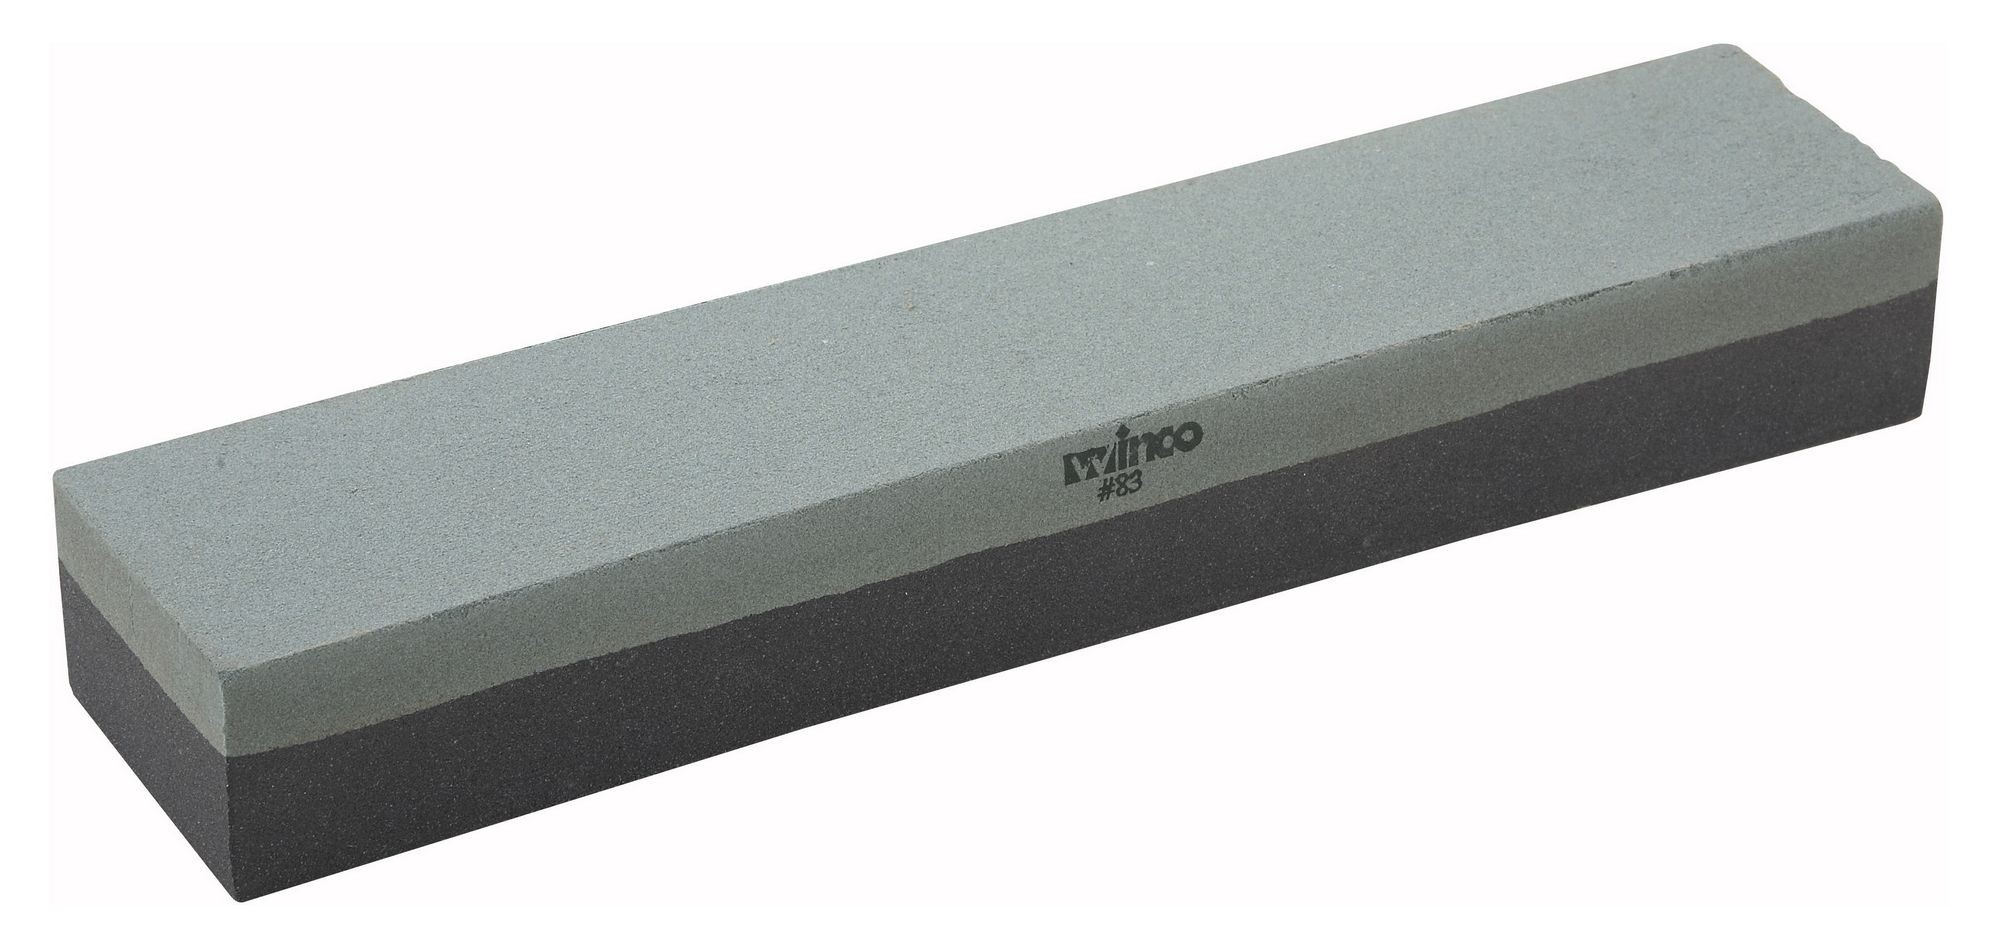 Combination Sharpening Stone - 12 X 2-1/2 X 1-1/2